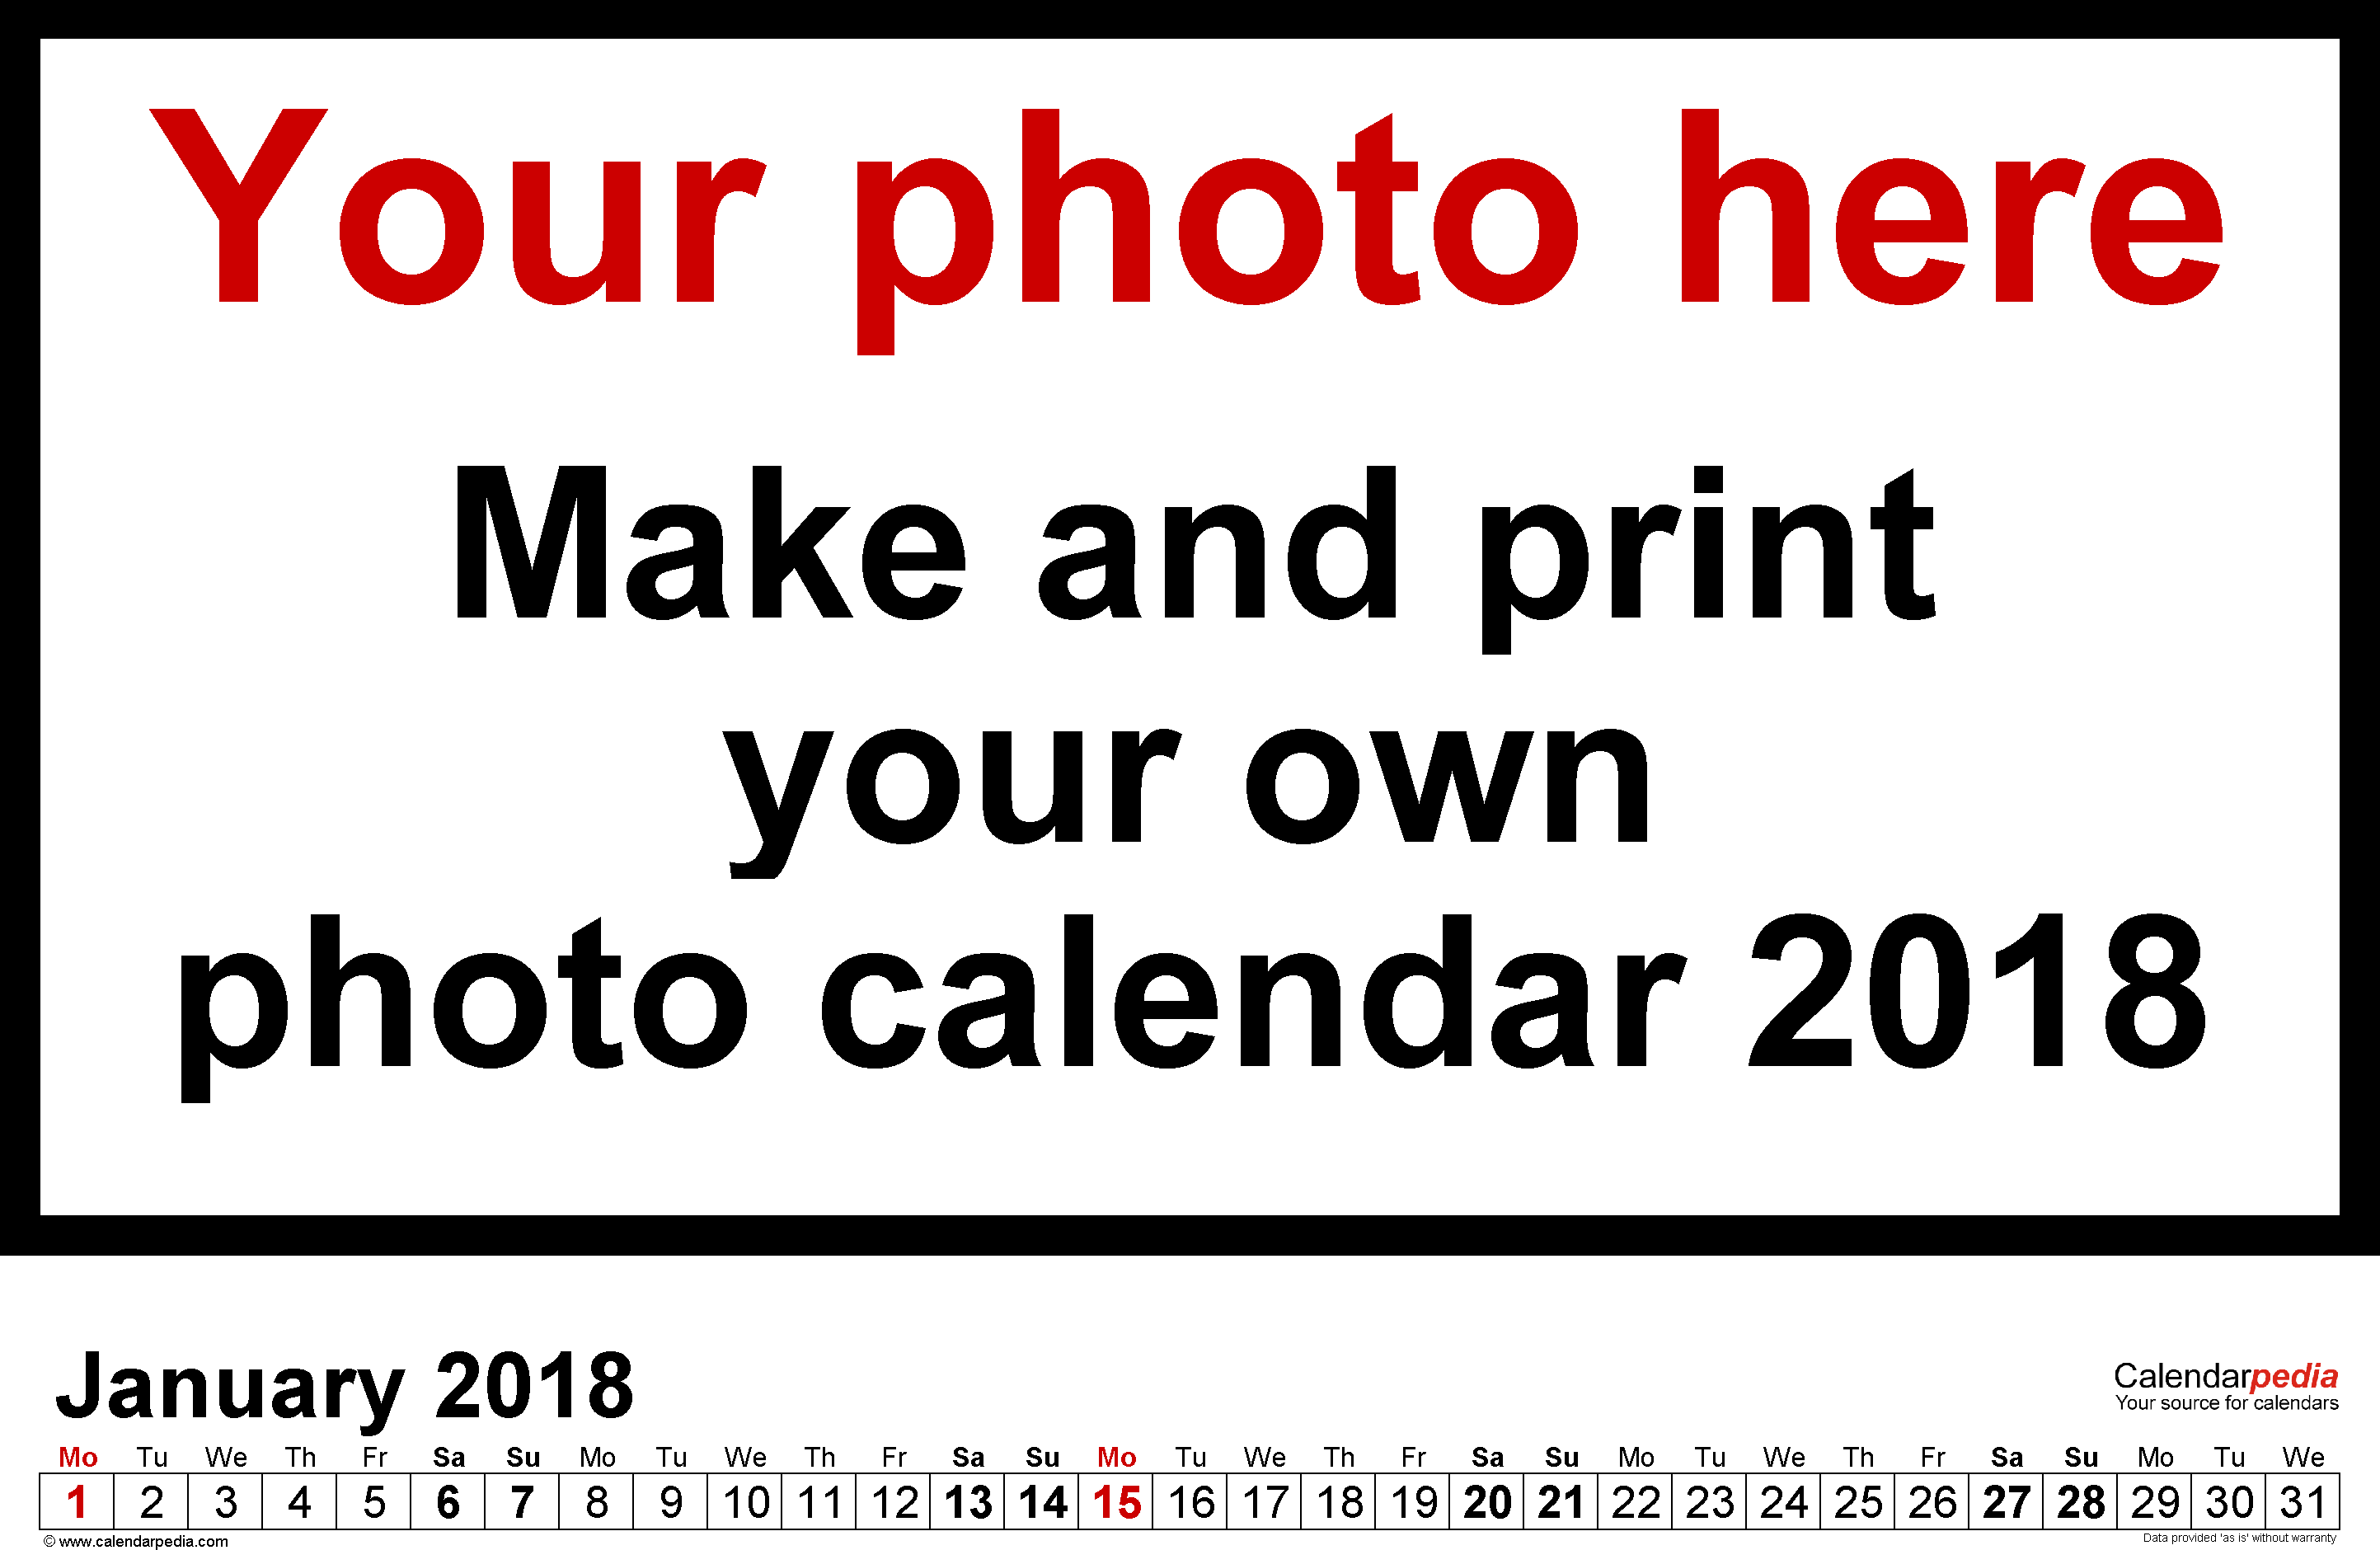 template 5 photo calendar 2018 for word 12 pages landscape format